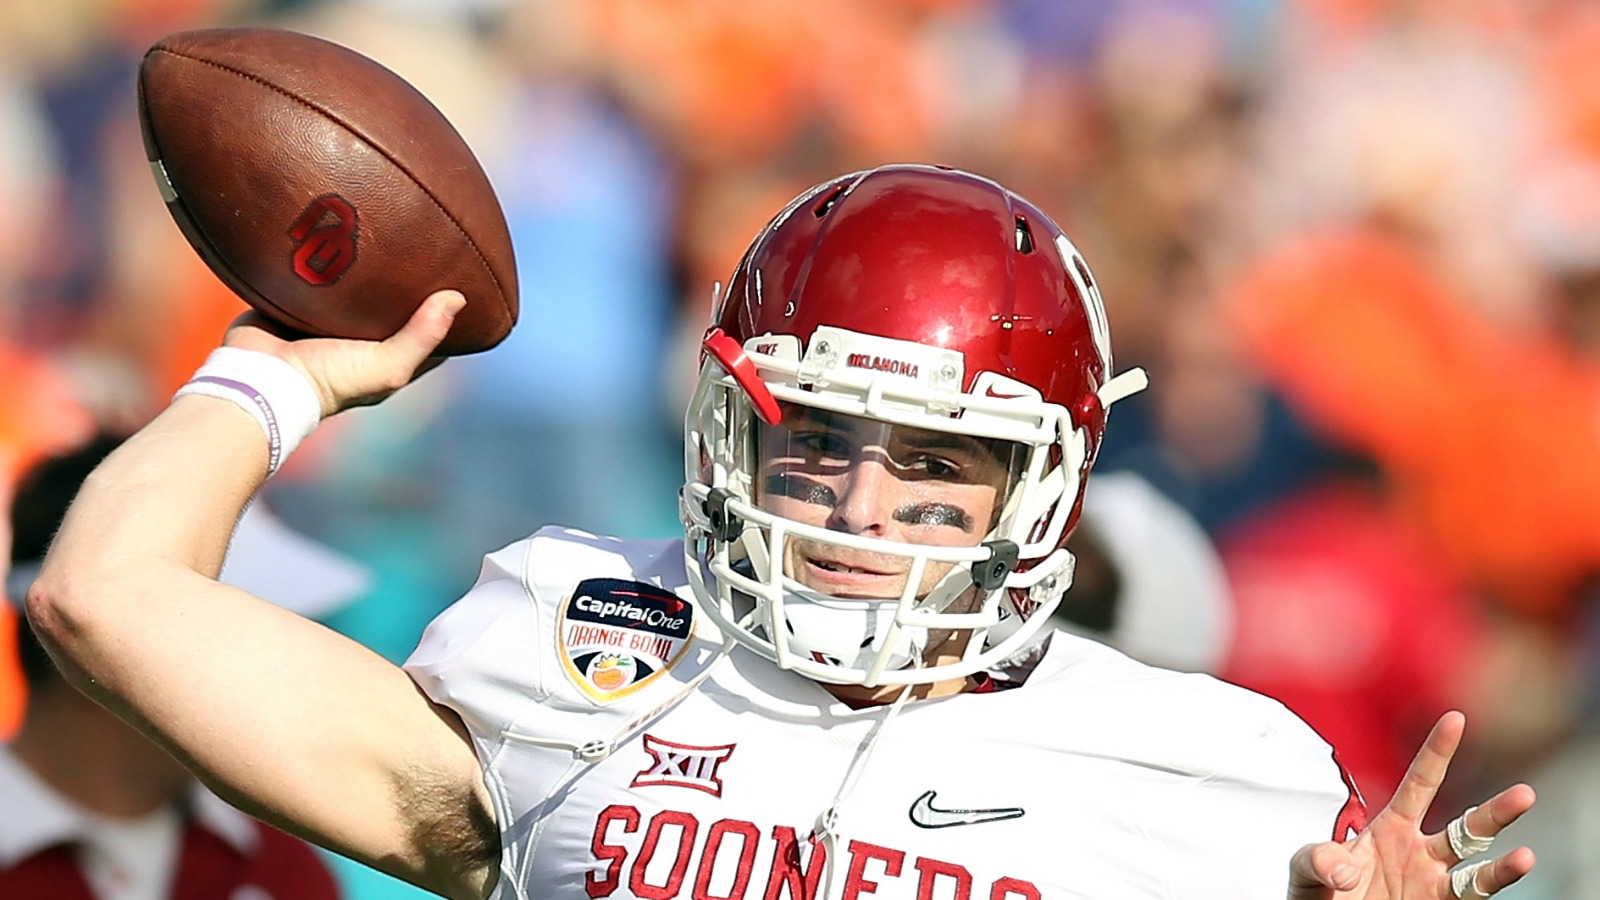 The Sooners' loaded offense should thrive behind Baker Mayfield